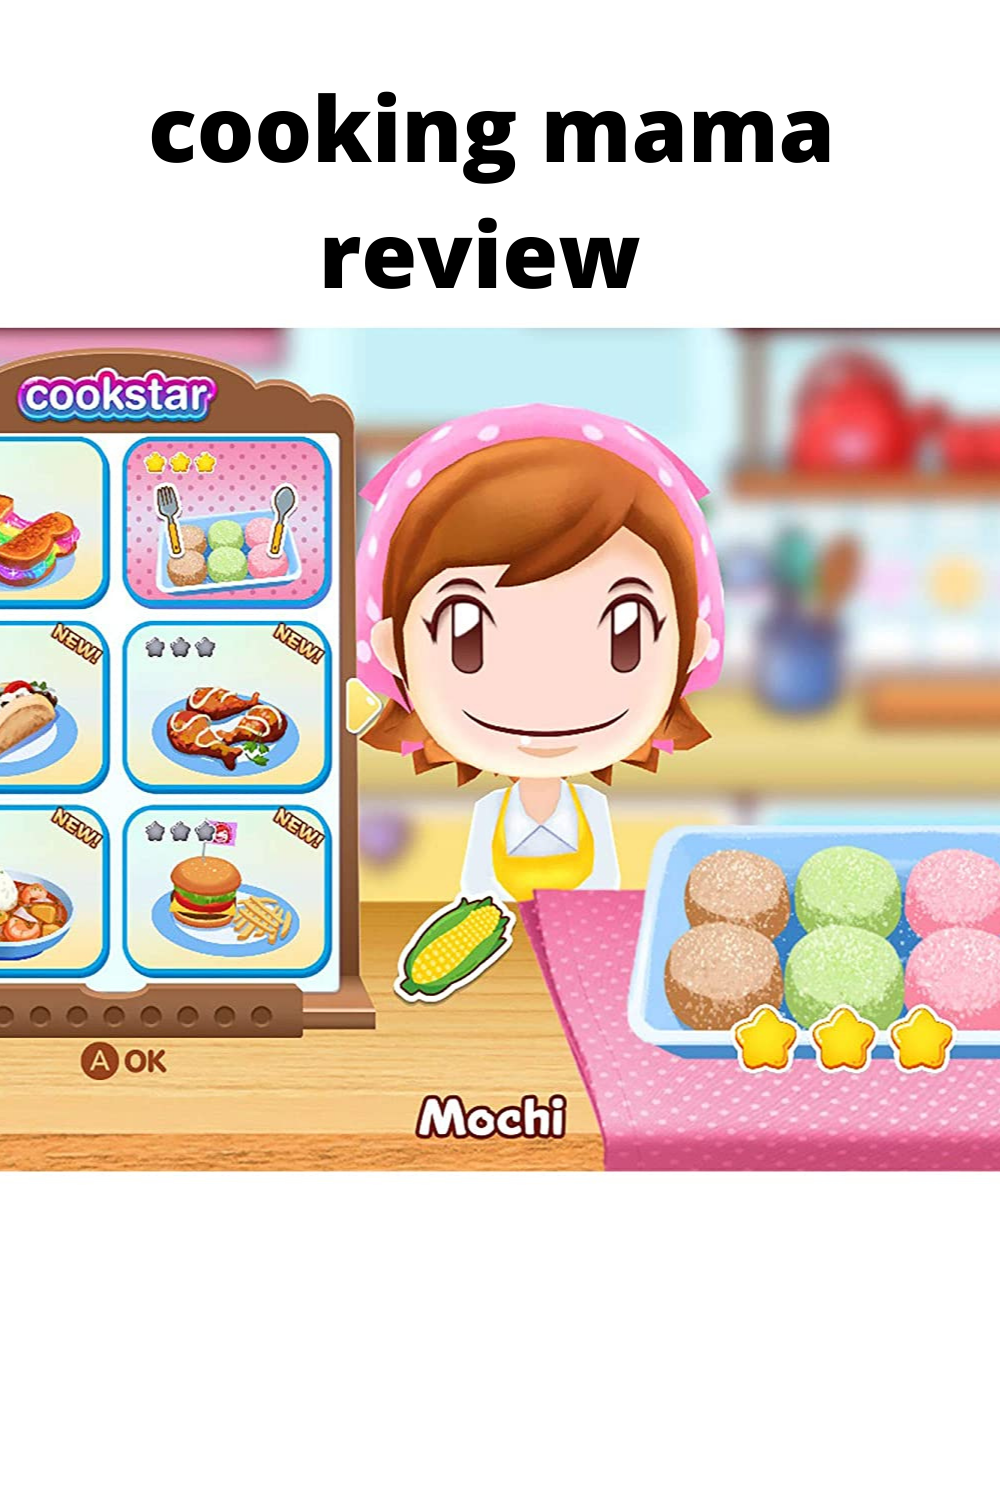 cooking mama review Cookstar, (2020) Nintendo Switch in